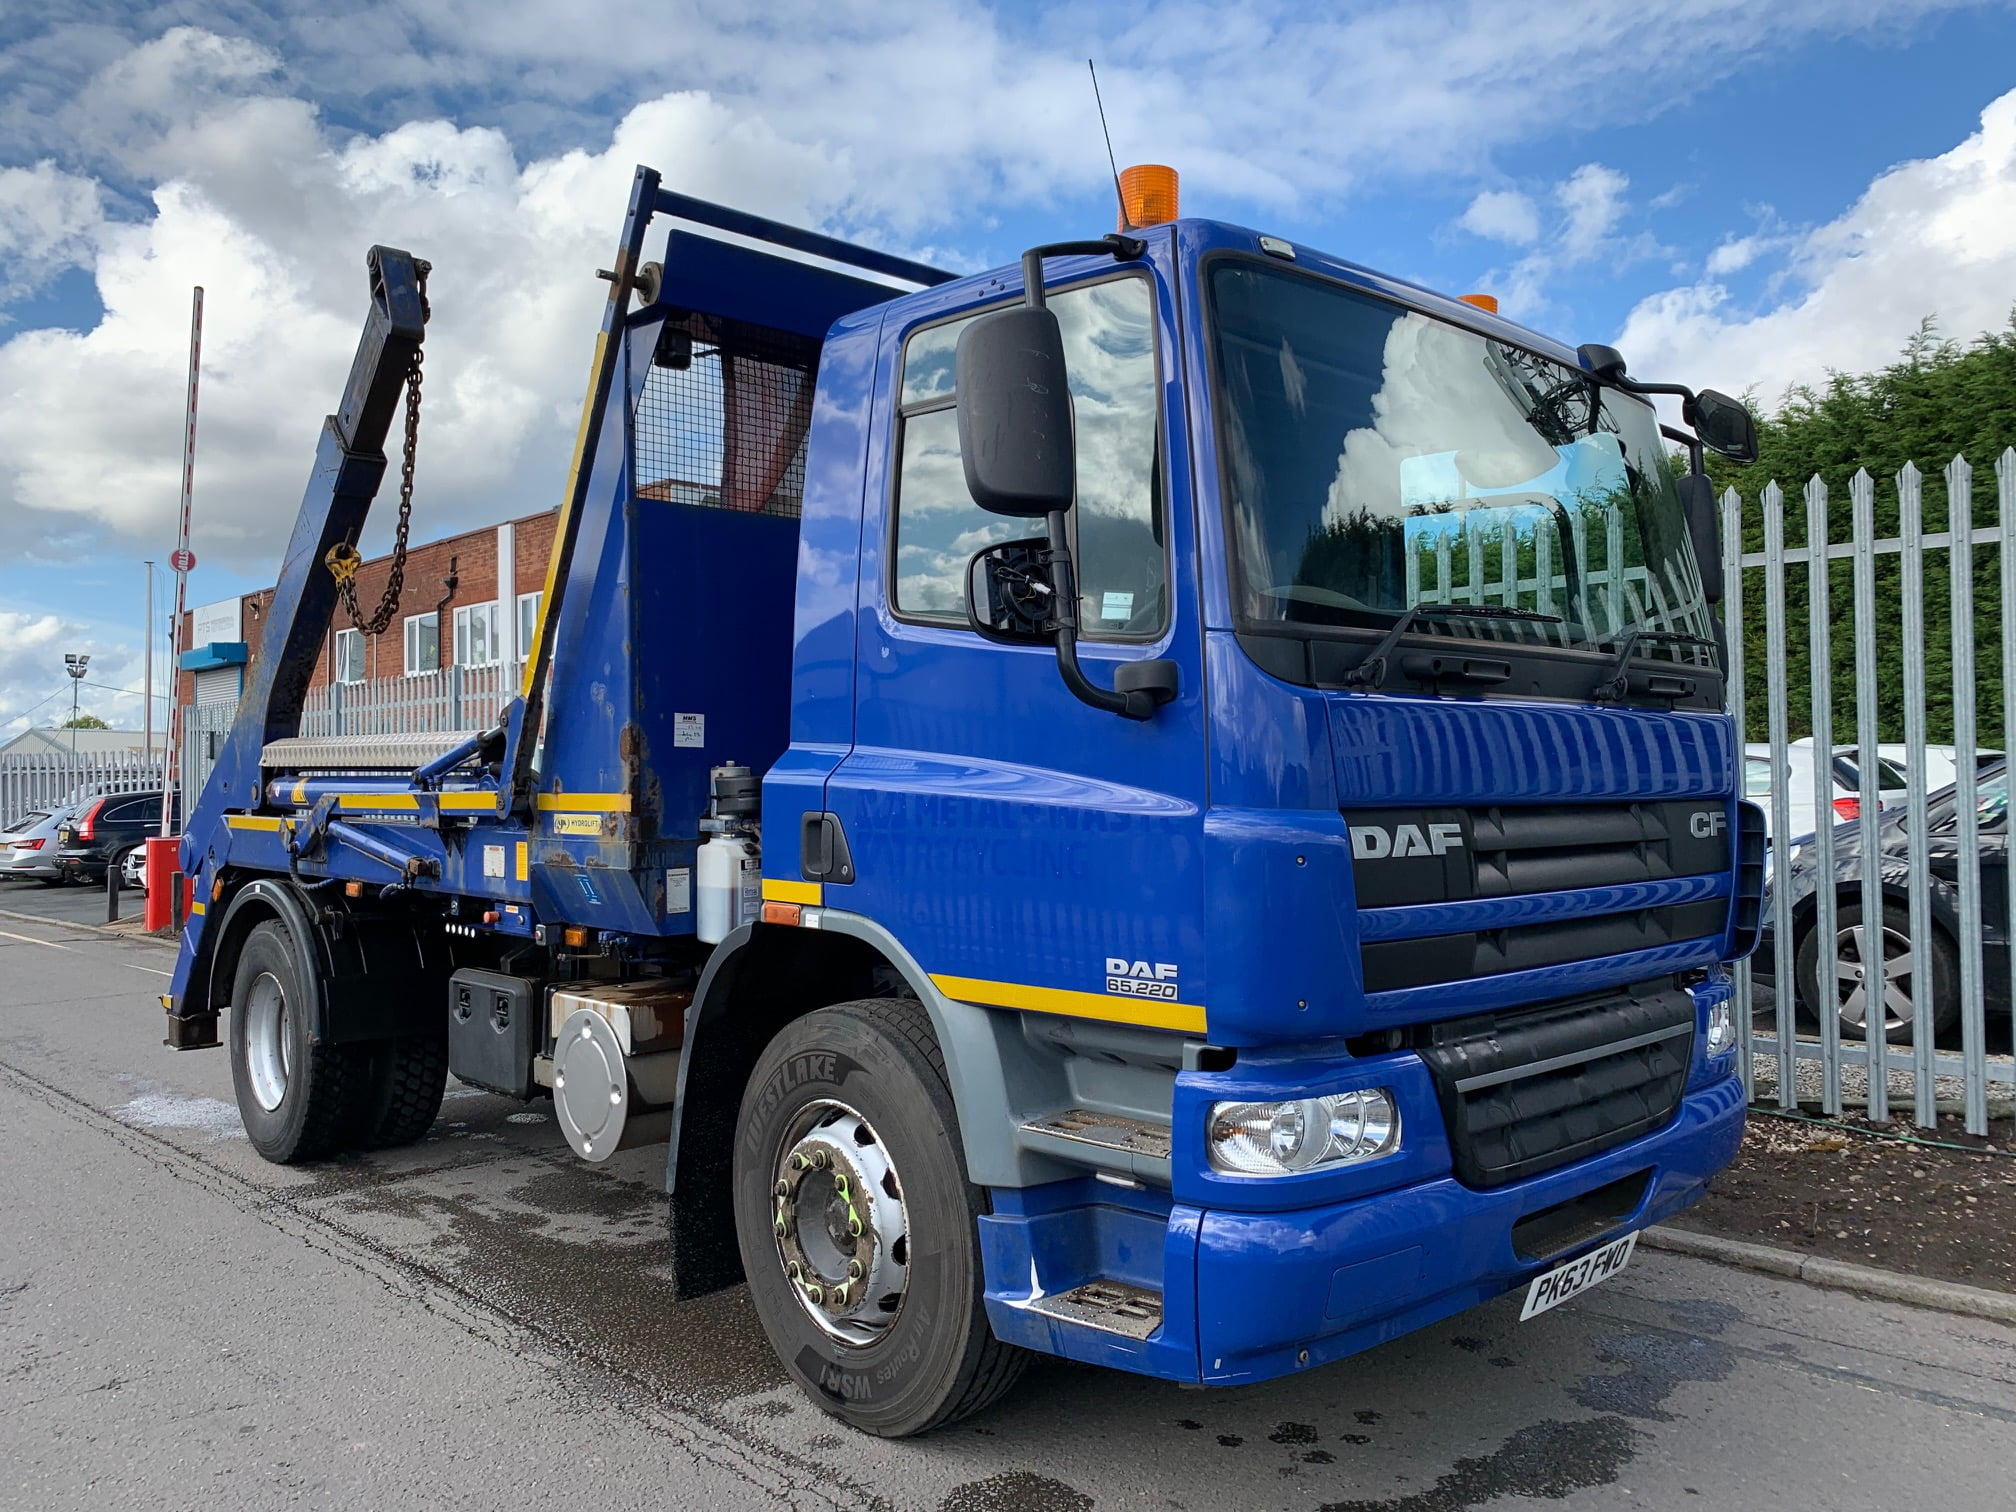 2013 (63) DAF CF.65 Skiploader, 18 Tonne, Euro 5, AJK Hydrolift Gear, 220bhp, Day Cab, Automatic Gearbox, Reverse Camera Fitted, Steering Wheel Controls.